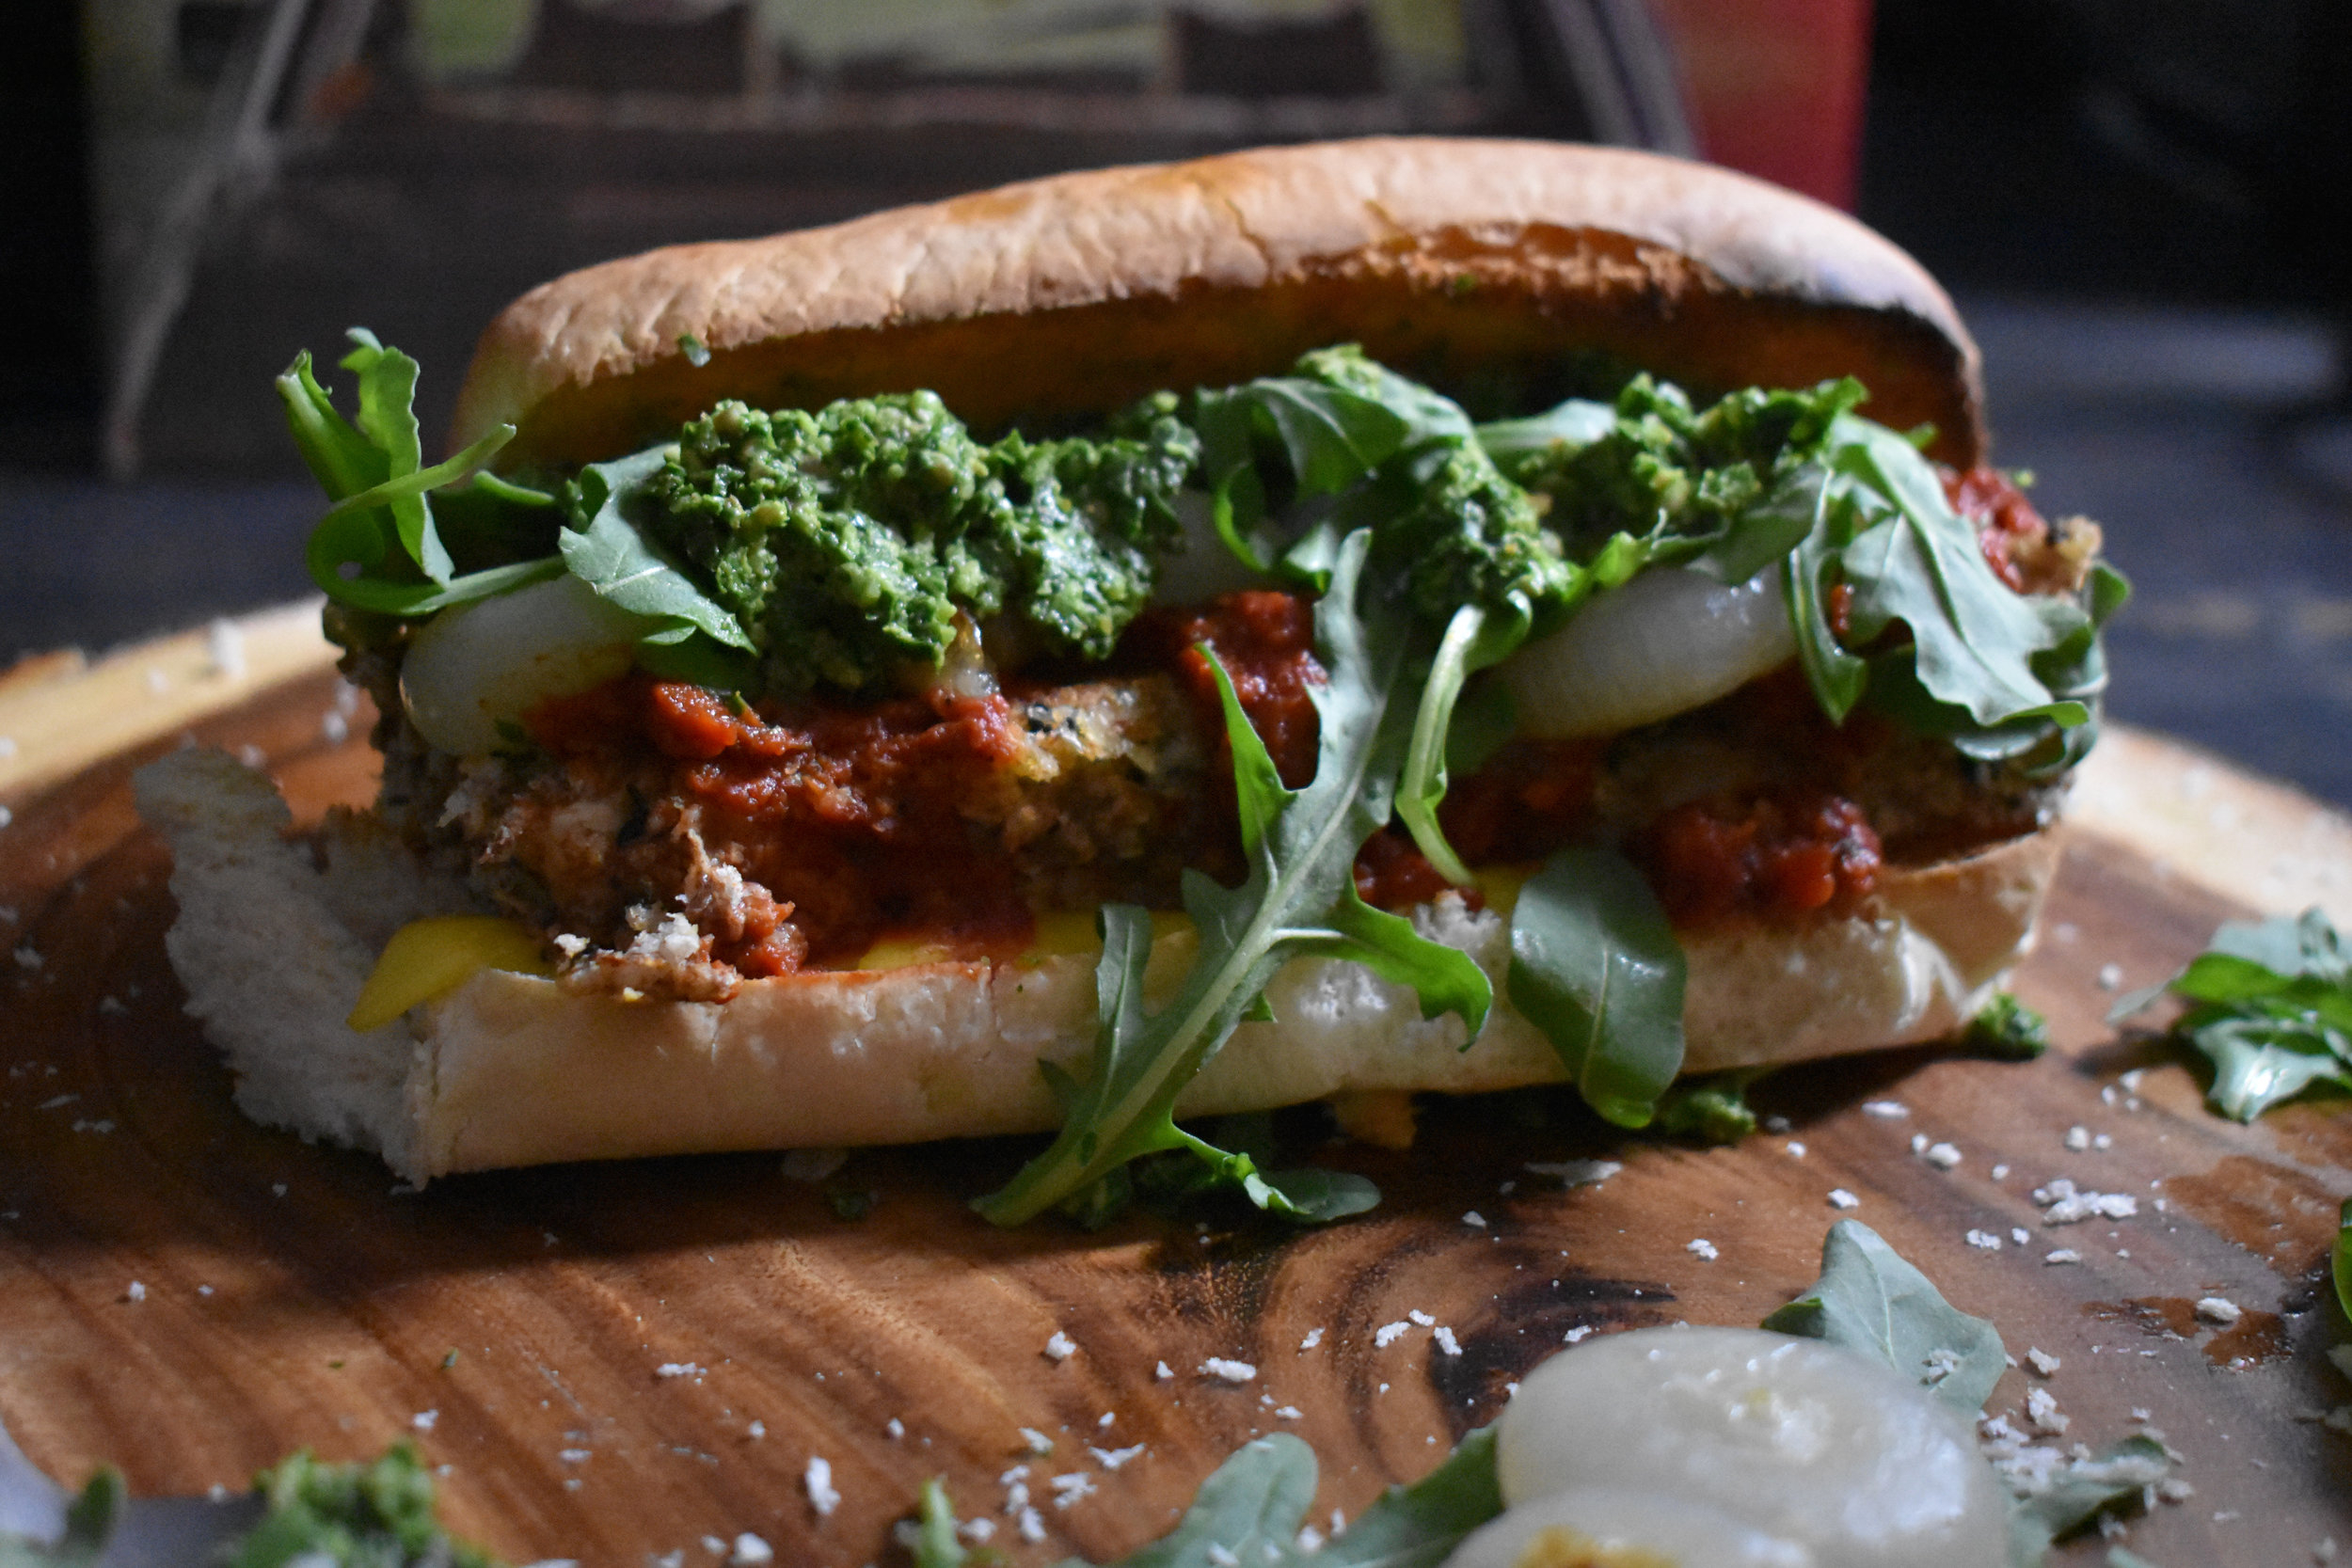 8. To finish the sandwich, add bread sliced open and a few 1/2 slices of vegan cheese to oven and broil at 525F for 5-6 minutes. Then layer on cutlets, tomato sauce, onions, pesto, and arugula.